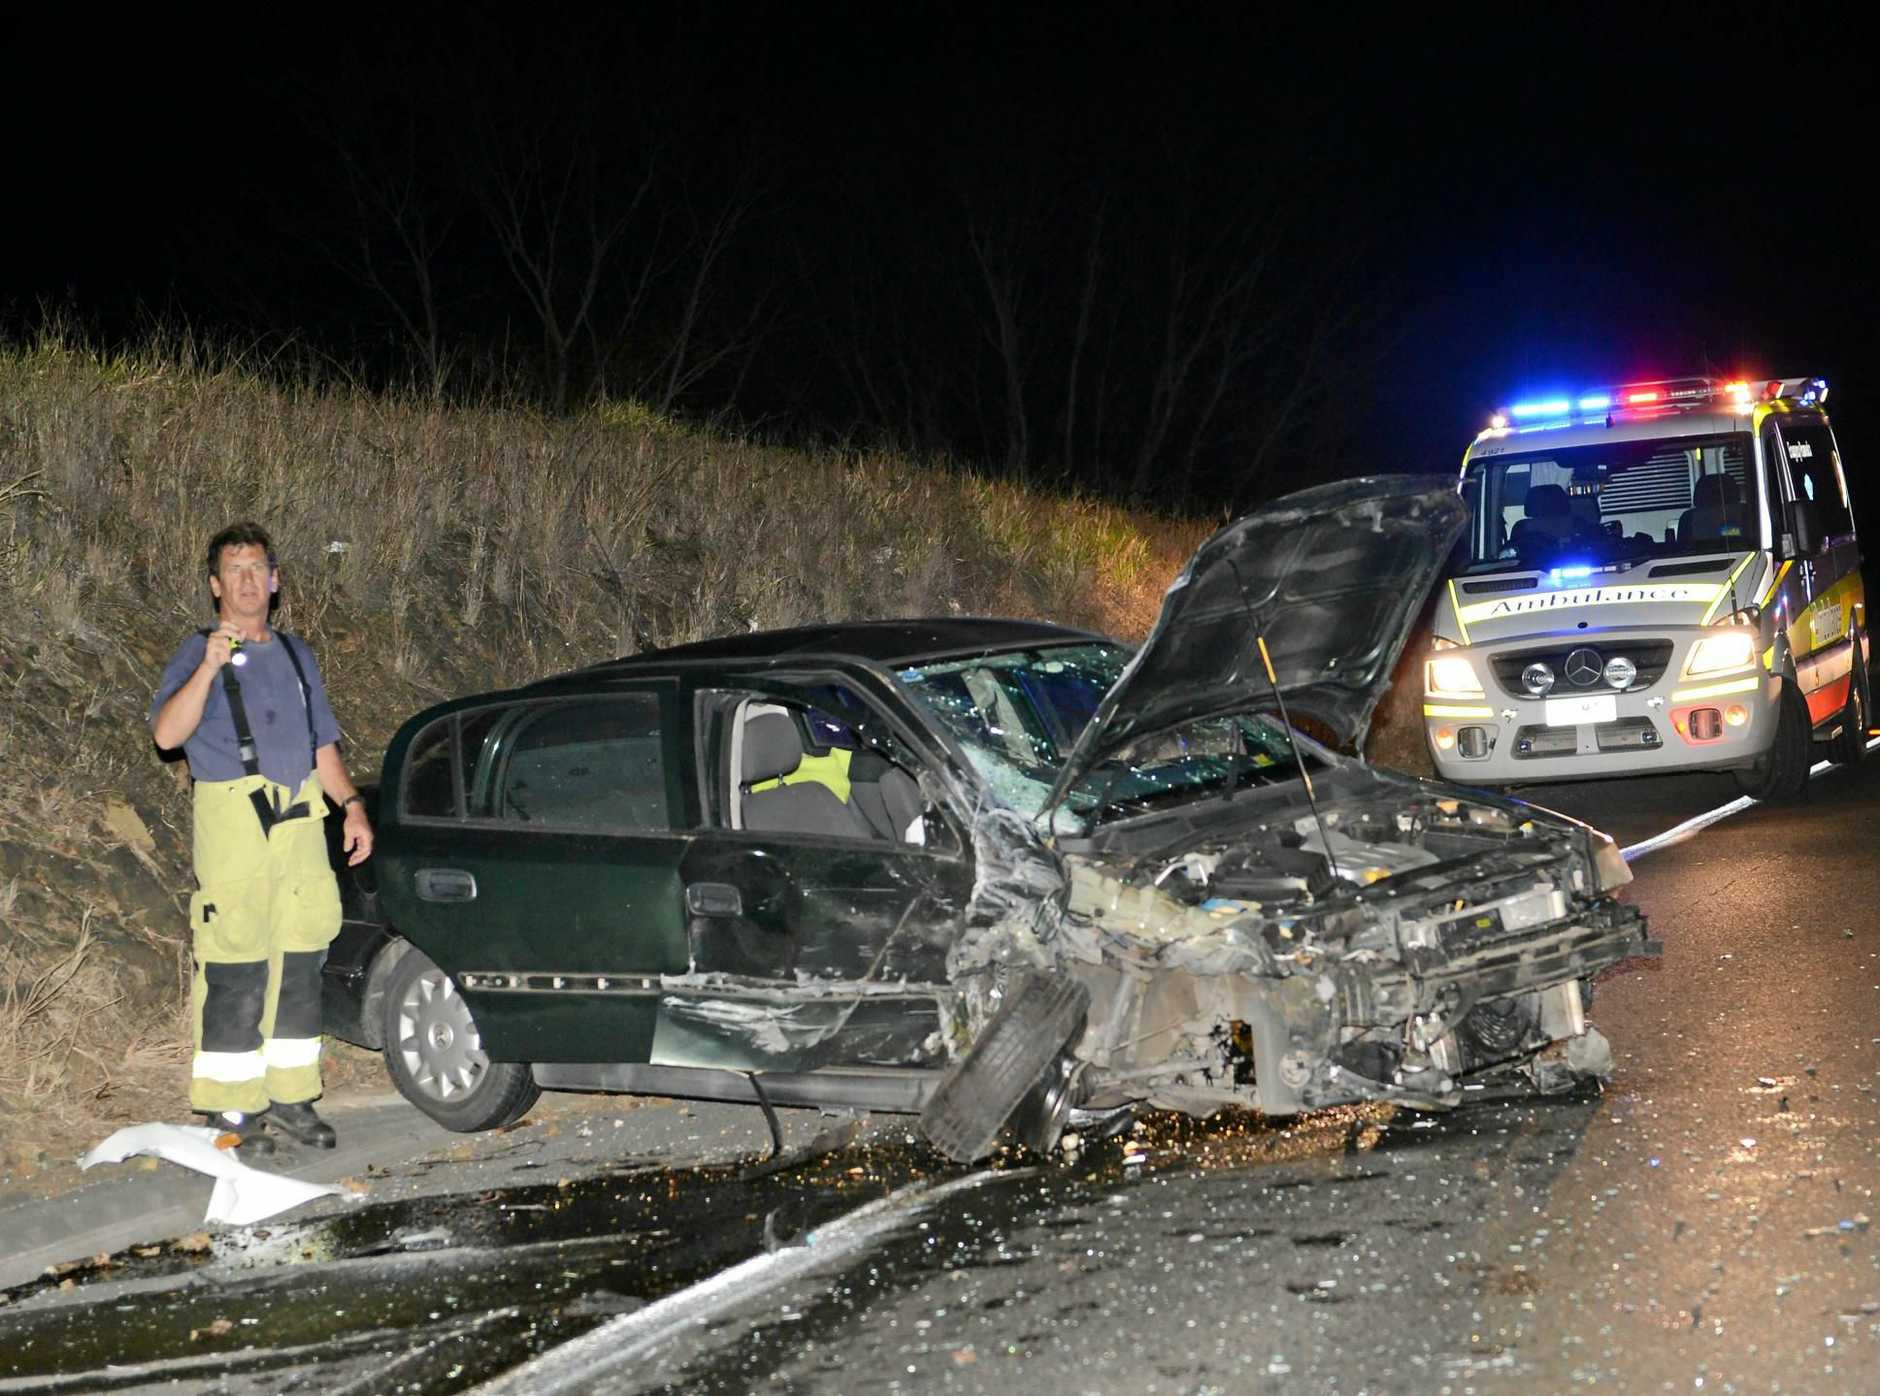 Fatal accident on the Bruce Highway in Gympie where a 50 year old man died.